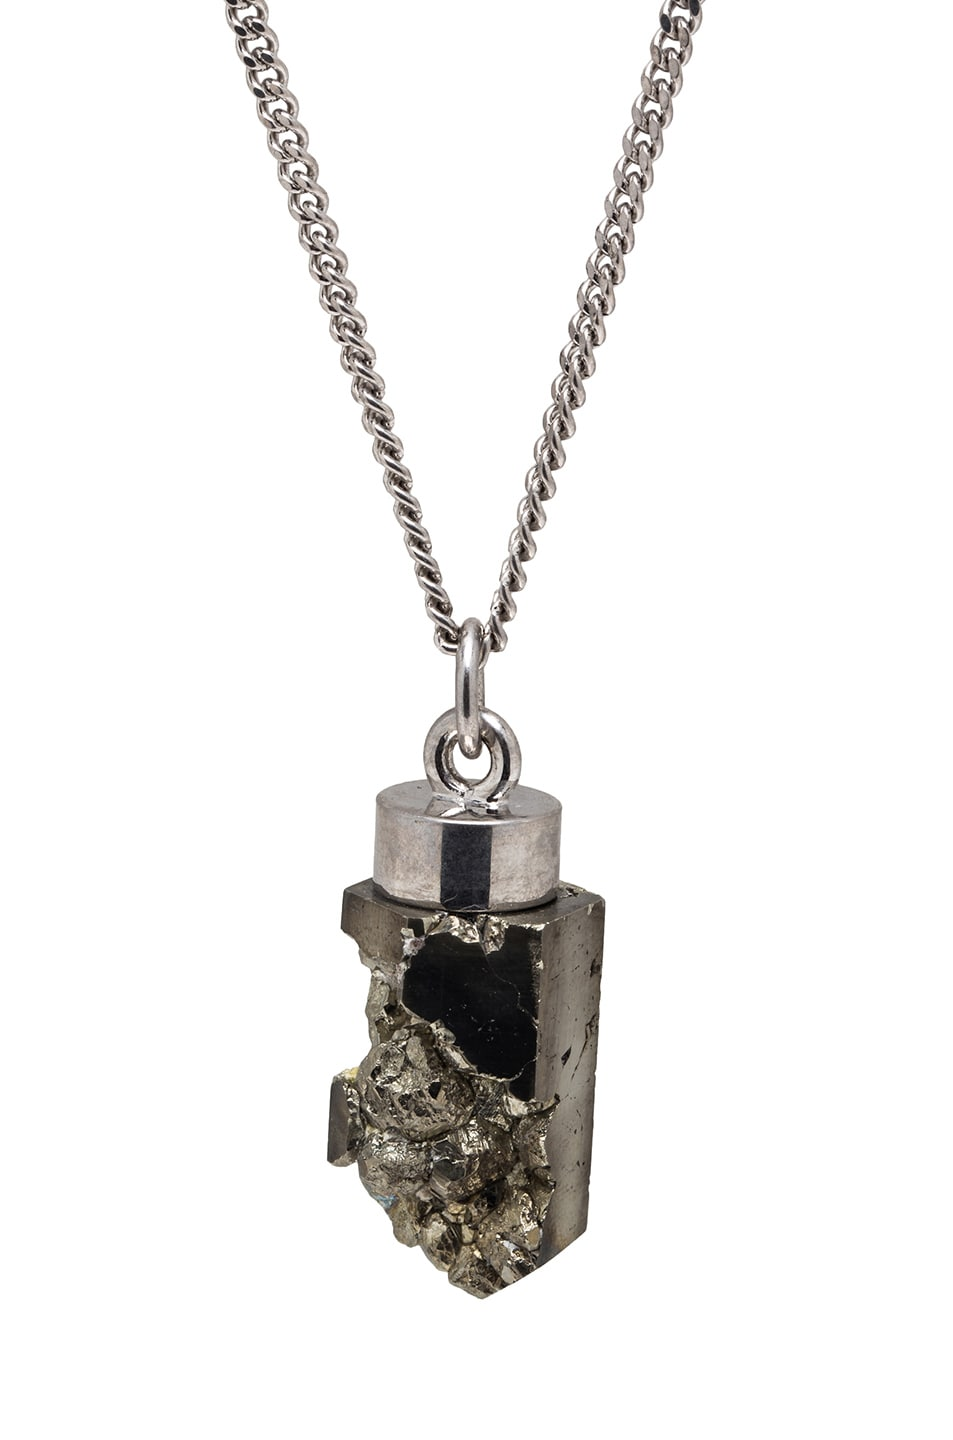 Givenchy pyrite pendant necklace in silver fwrd image 1 of givenchy pyrite pendant necklace in silver aloadofball Images